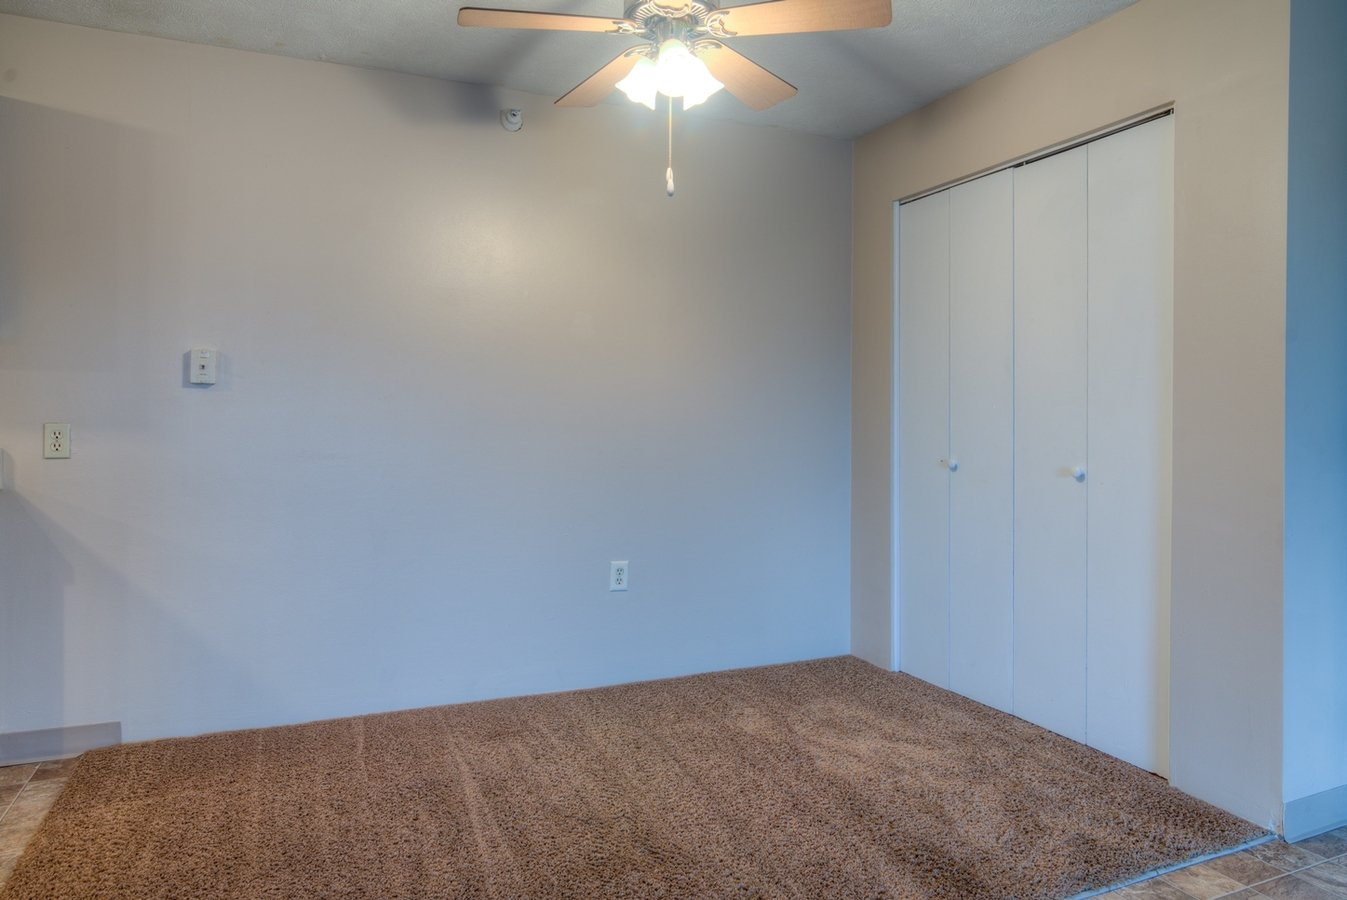 3 Bedrooms 2 Bathrooms Apartment for rent at Cambridge Apartments in Fremont, NE